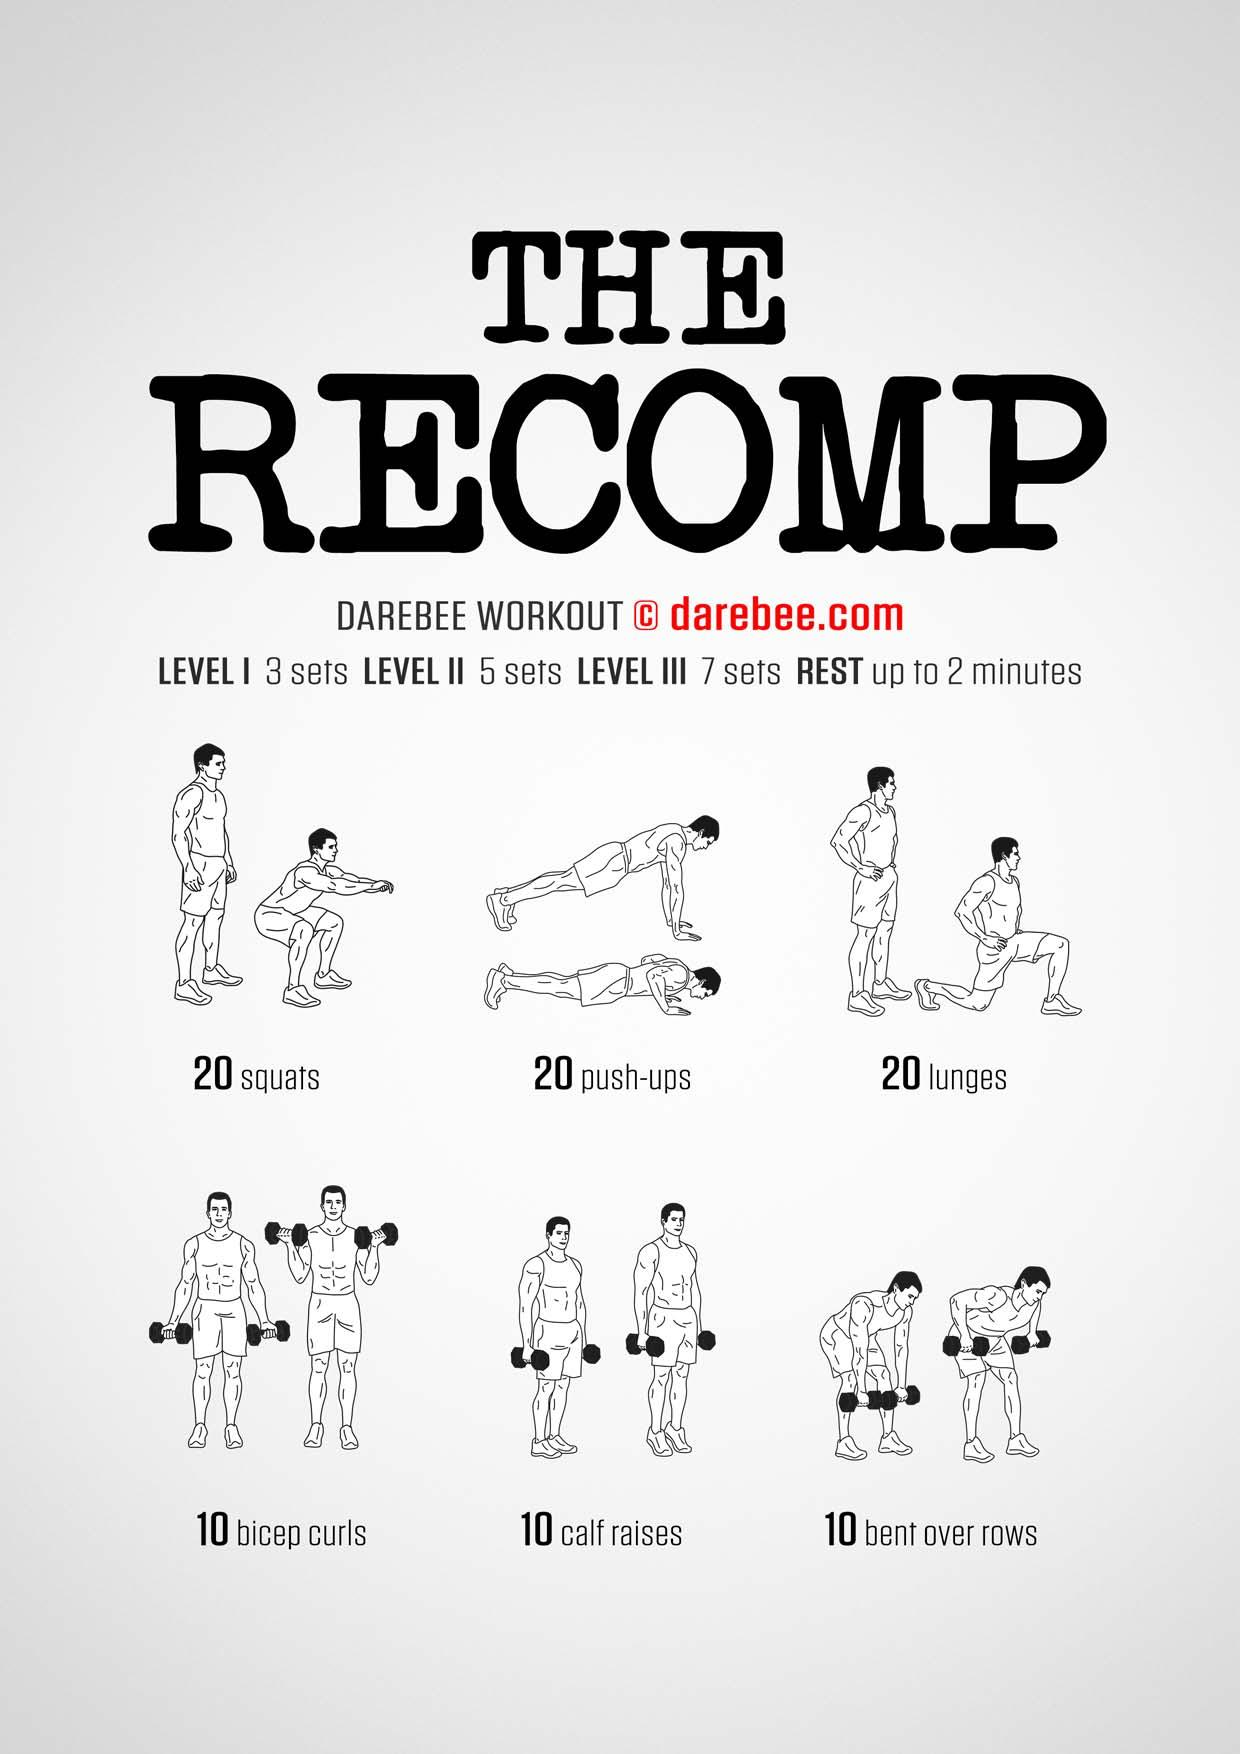 recomp-workout-page-001